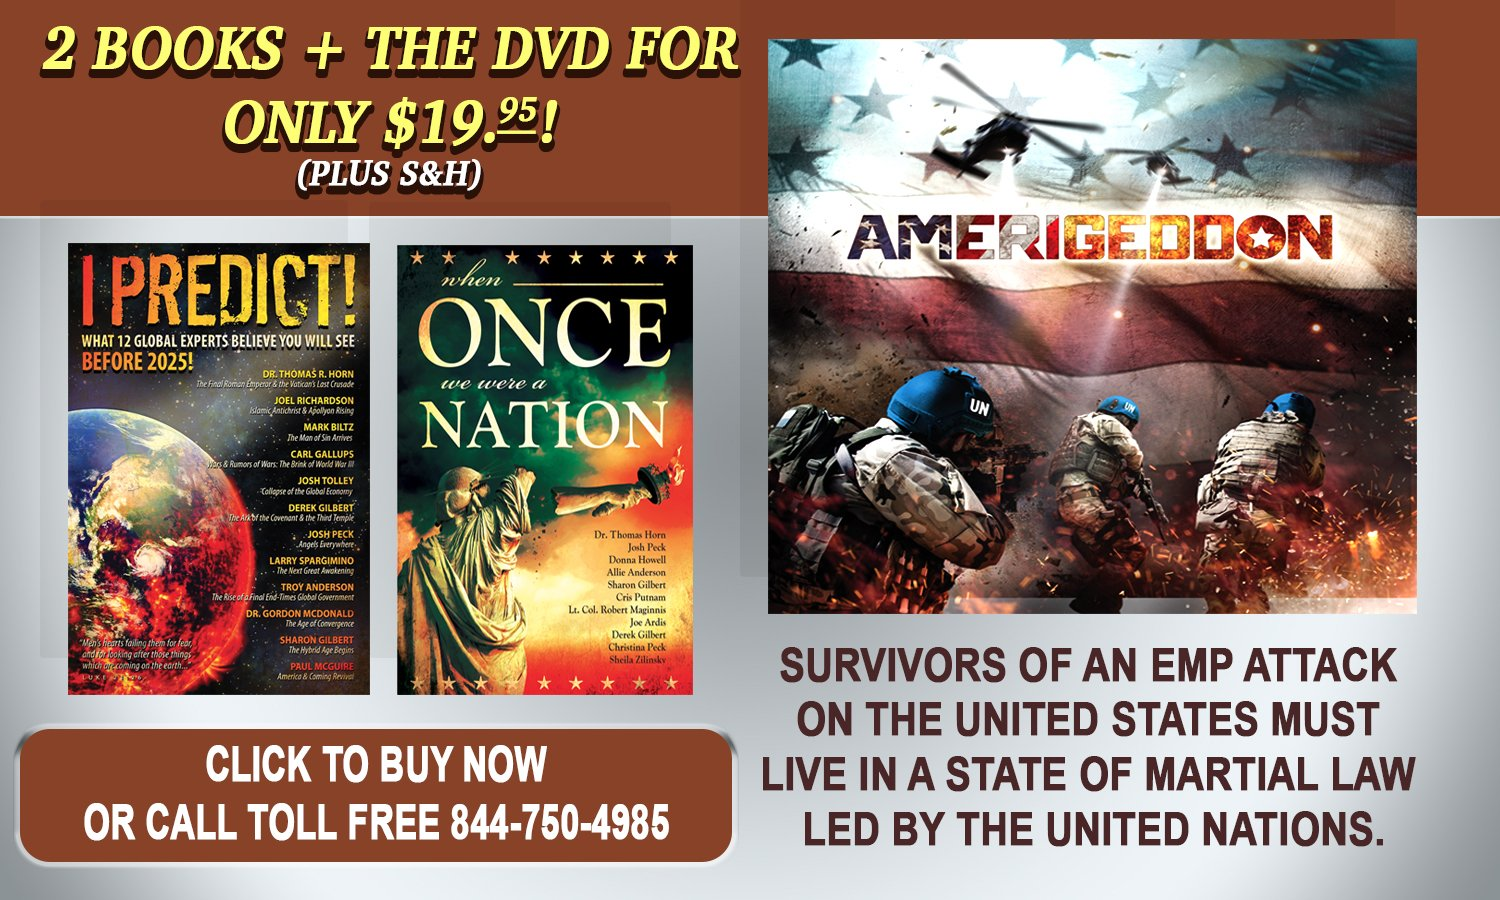 FREE BOOKS WITH AMERIGEDDON!